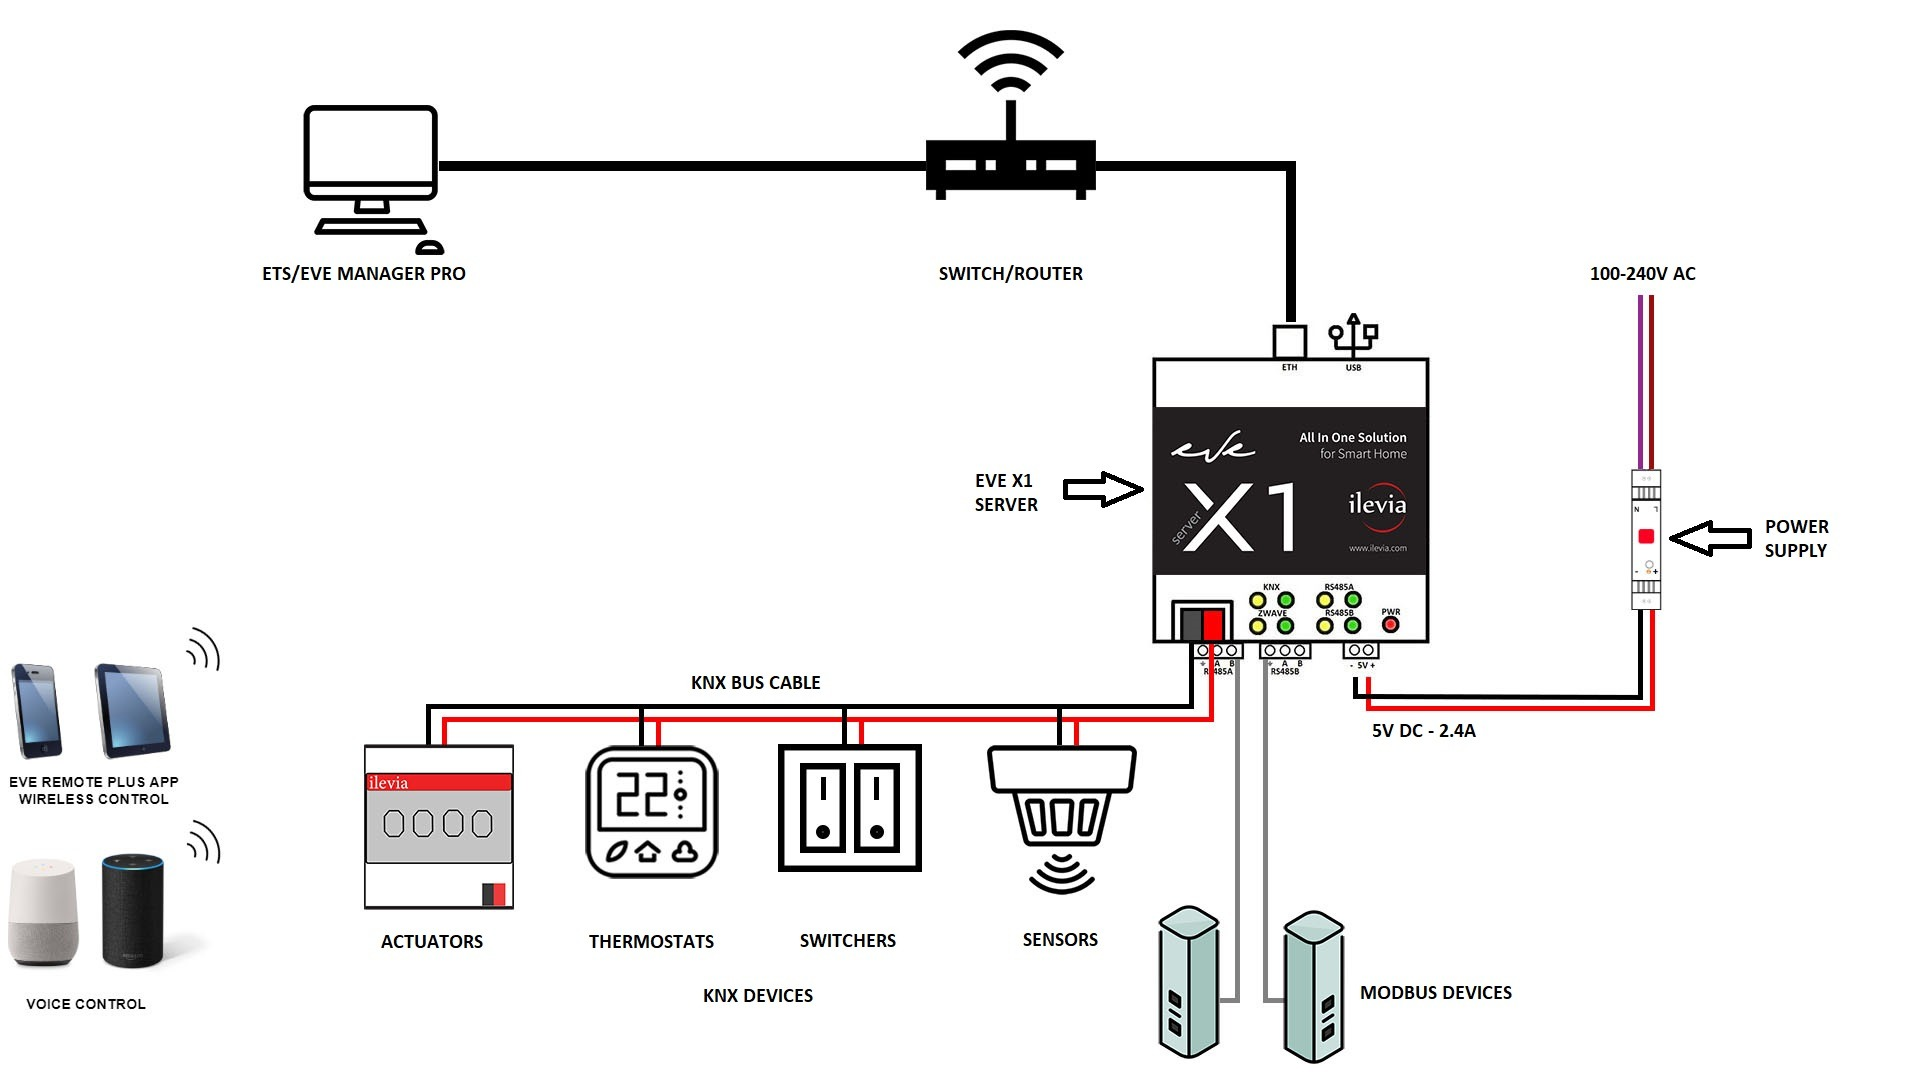 How the a complete Home automation X1 server wiring is with all the specifications of the plant